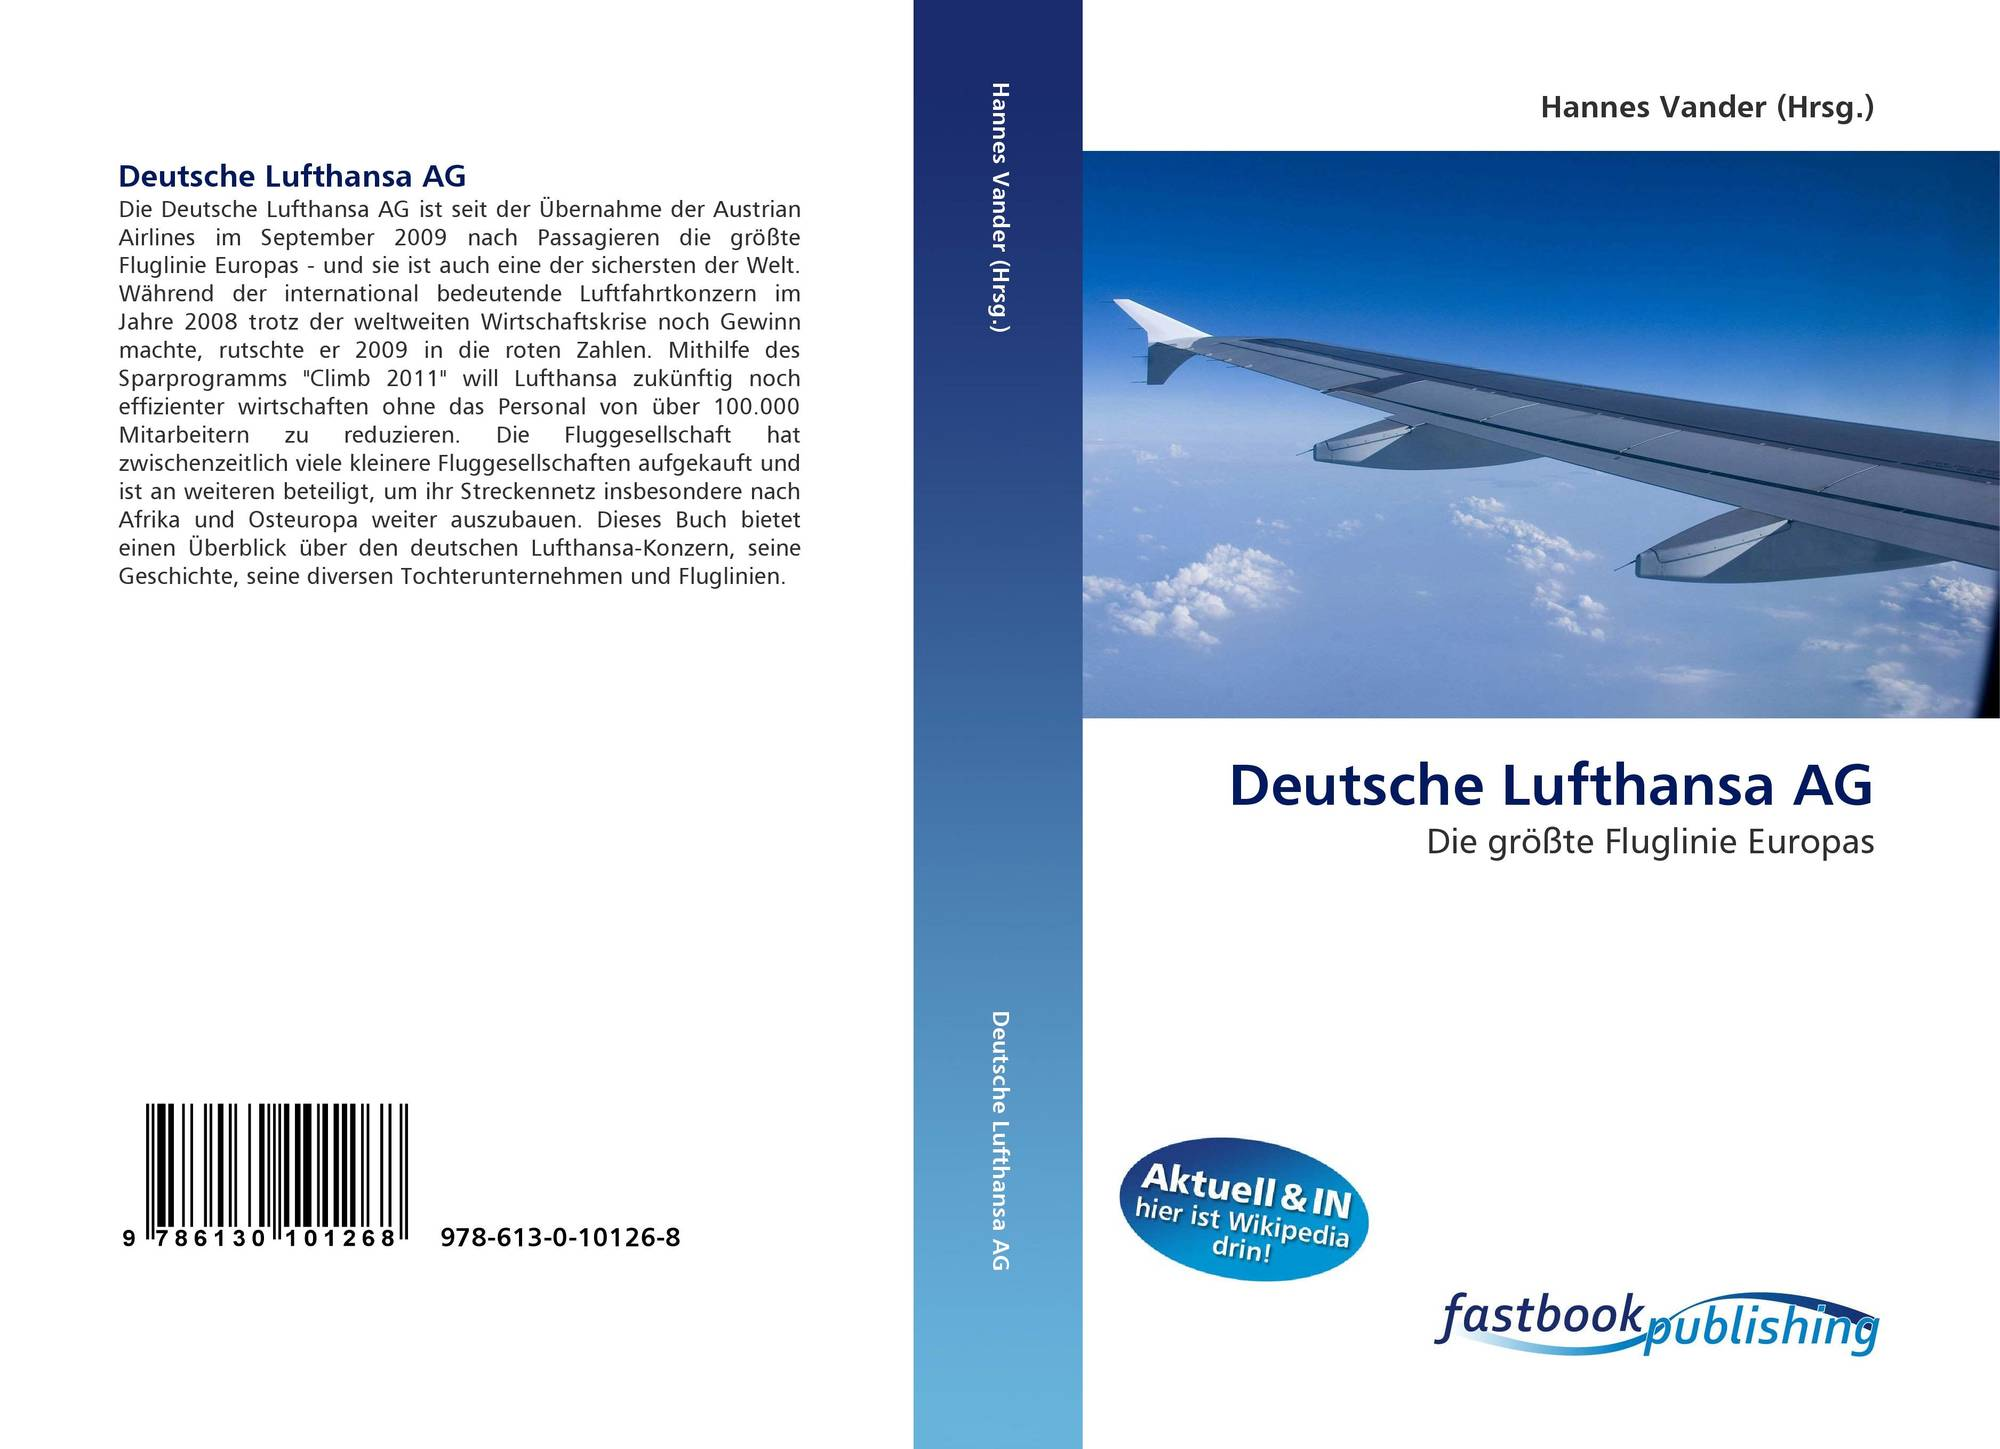 deutsche lufthansa ag essay Read lufthansa essays and research papers view and download complete sample lufthansa essays, instructions, works cited pages, and more get unlimited access to 100,000+ essays lufthansa essays and research papers instructions for lufthansa college essay examples title: the organization i choose lufthansa paper write paper lufthansa.